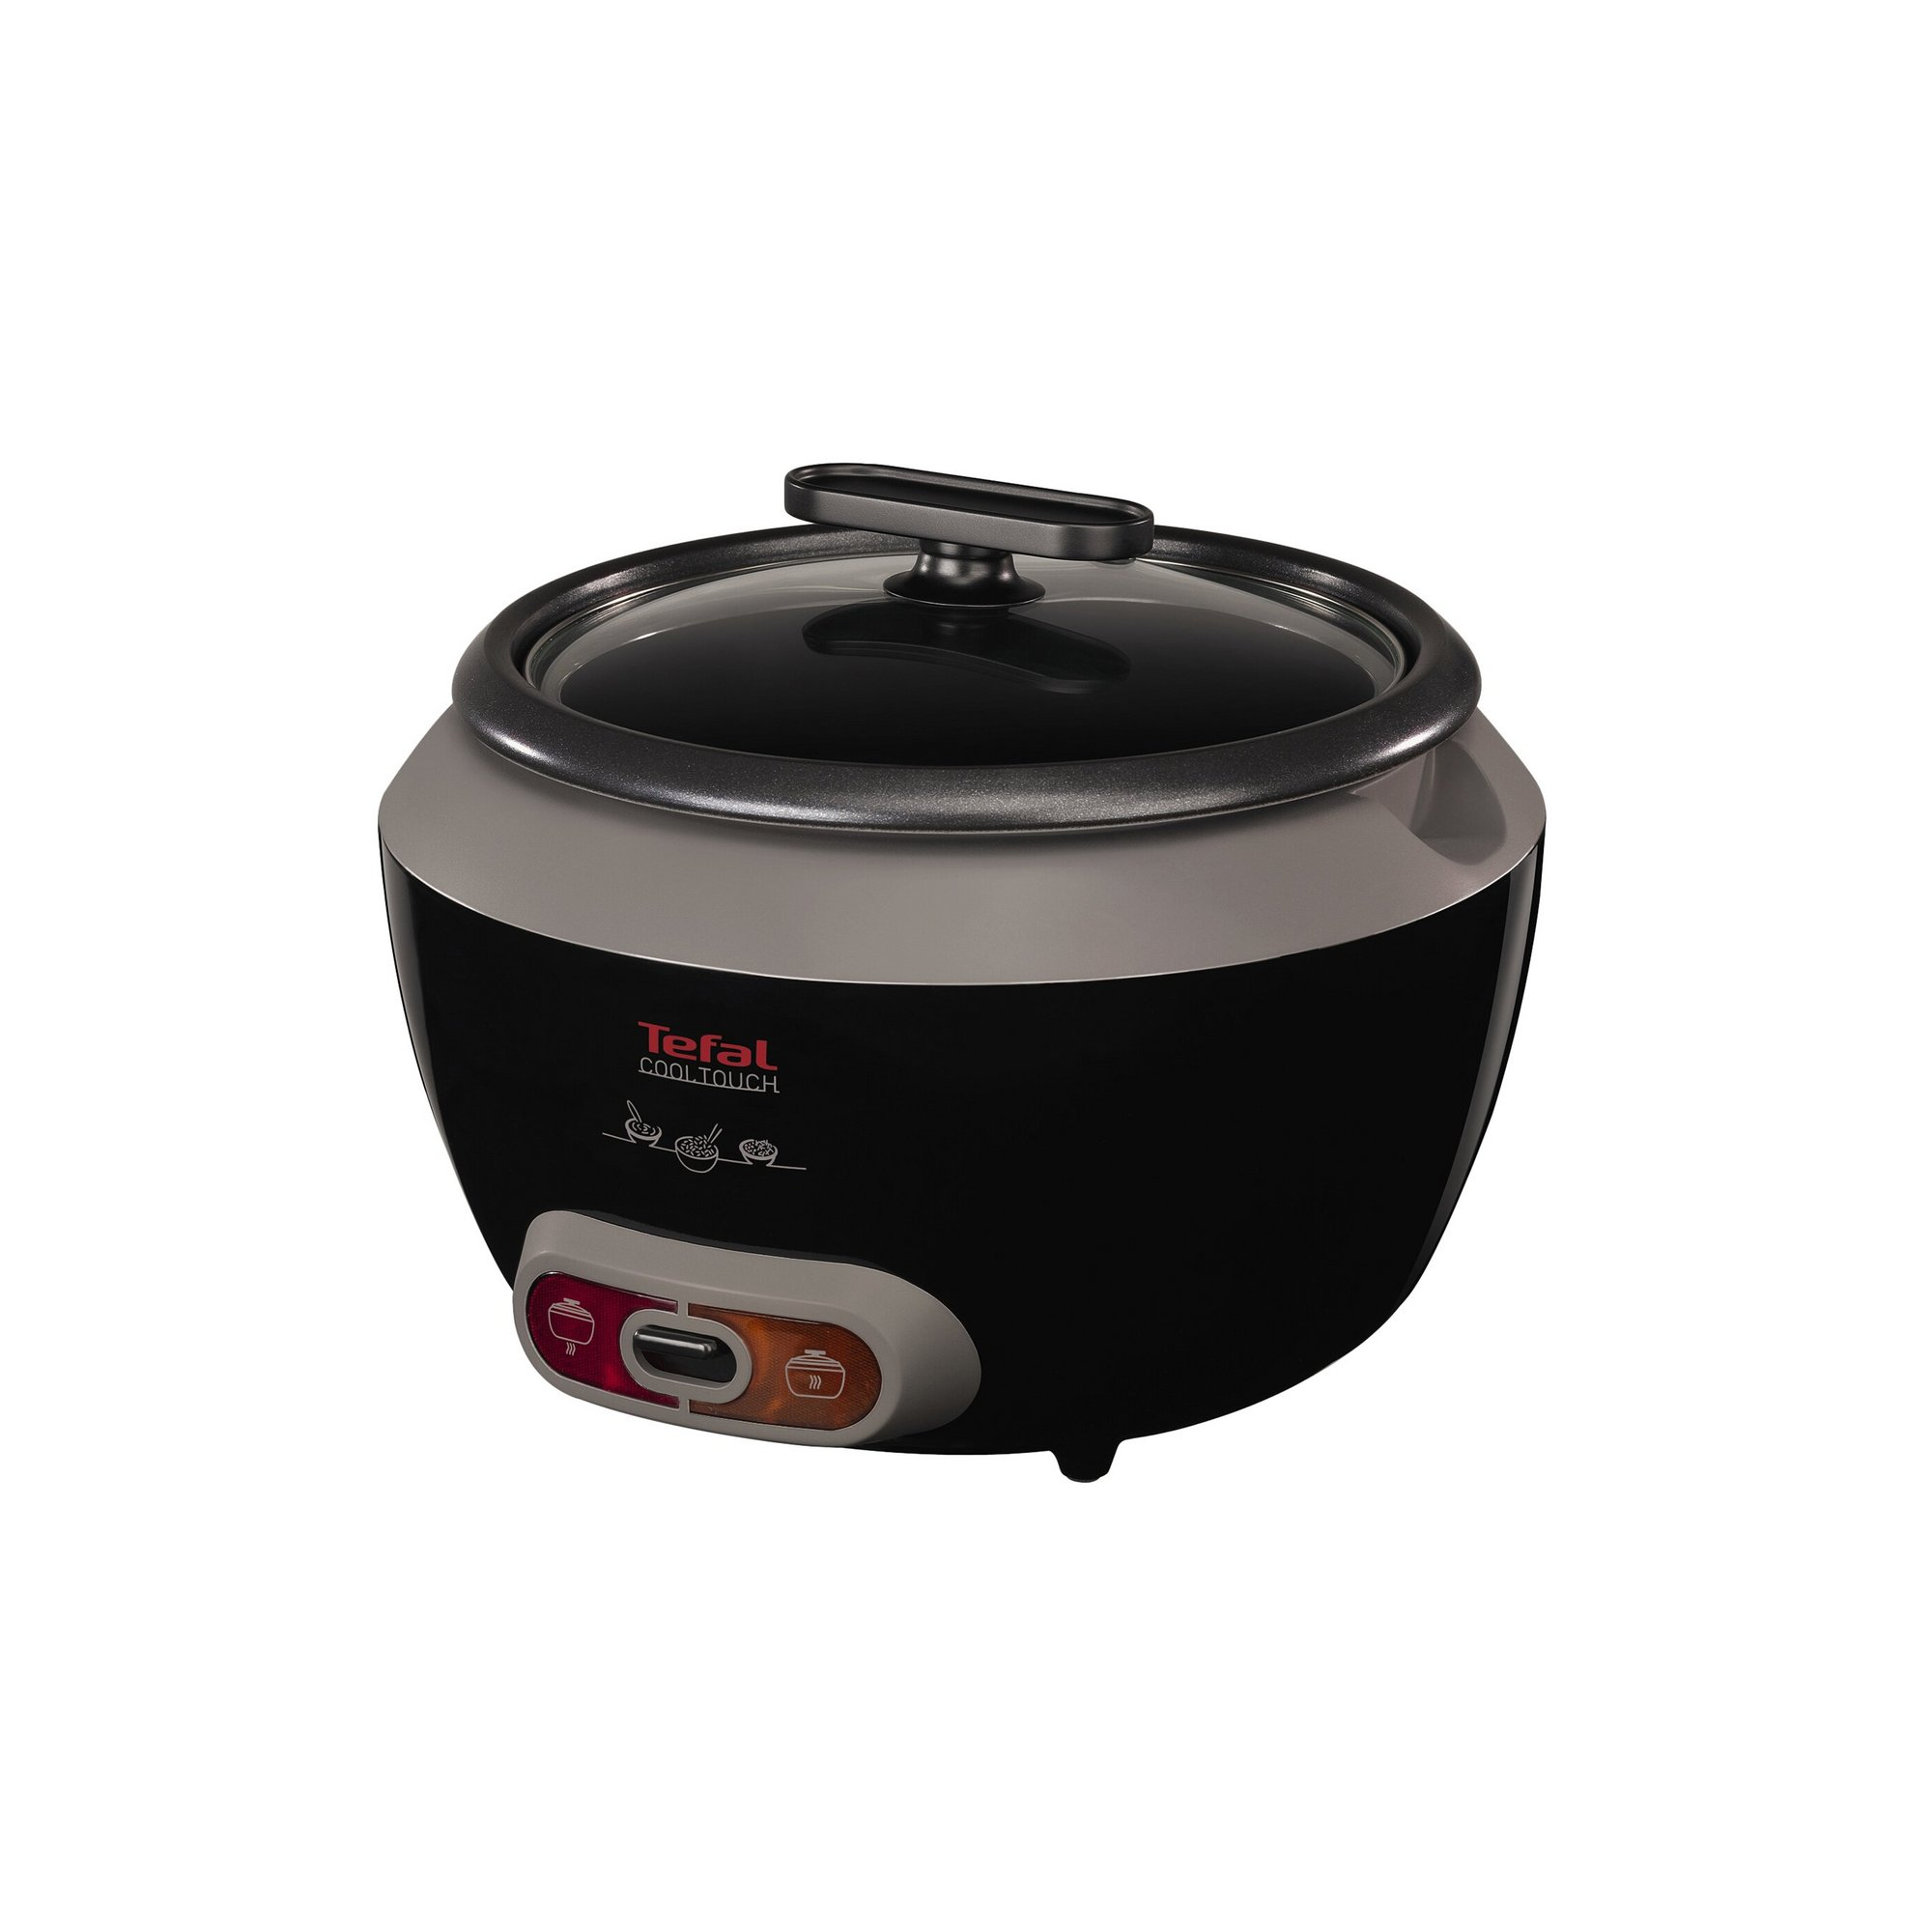 Image of Tefal Cooltouch Rice Cooker